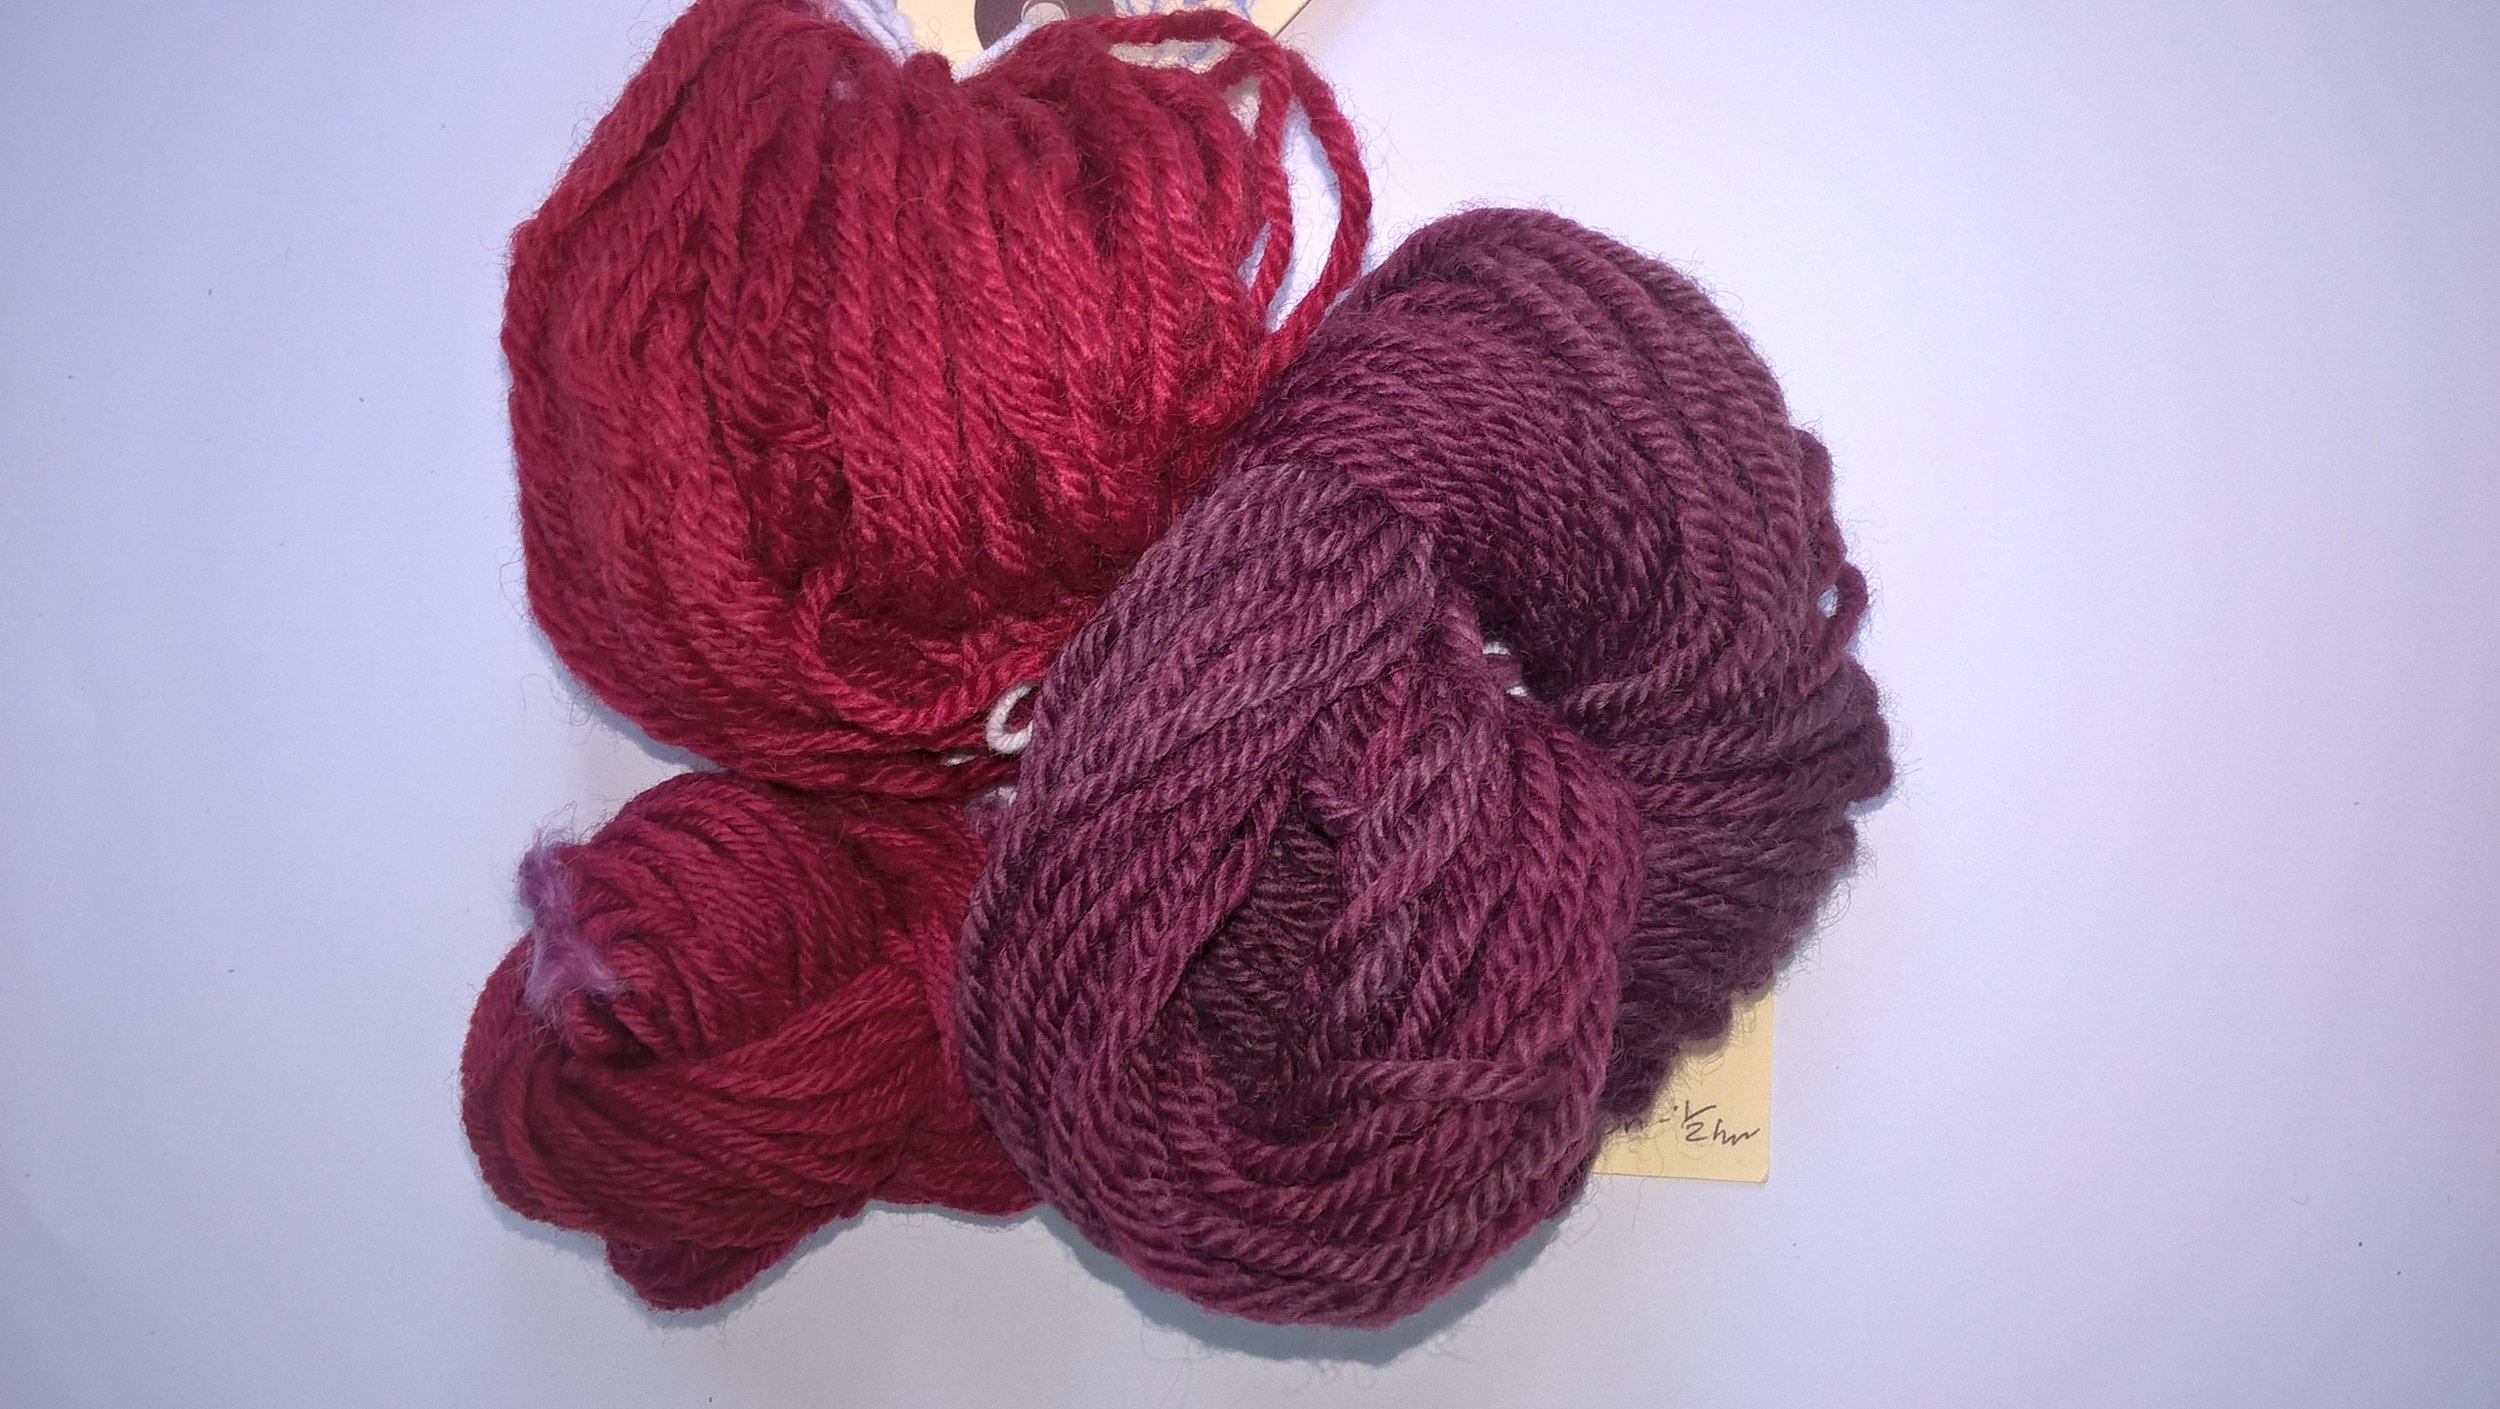 yarn dyed with madder, with three mordents